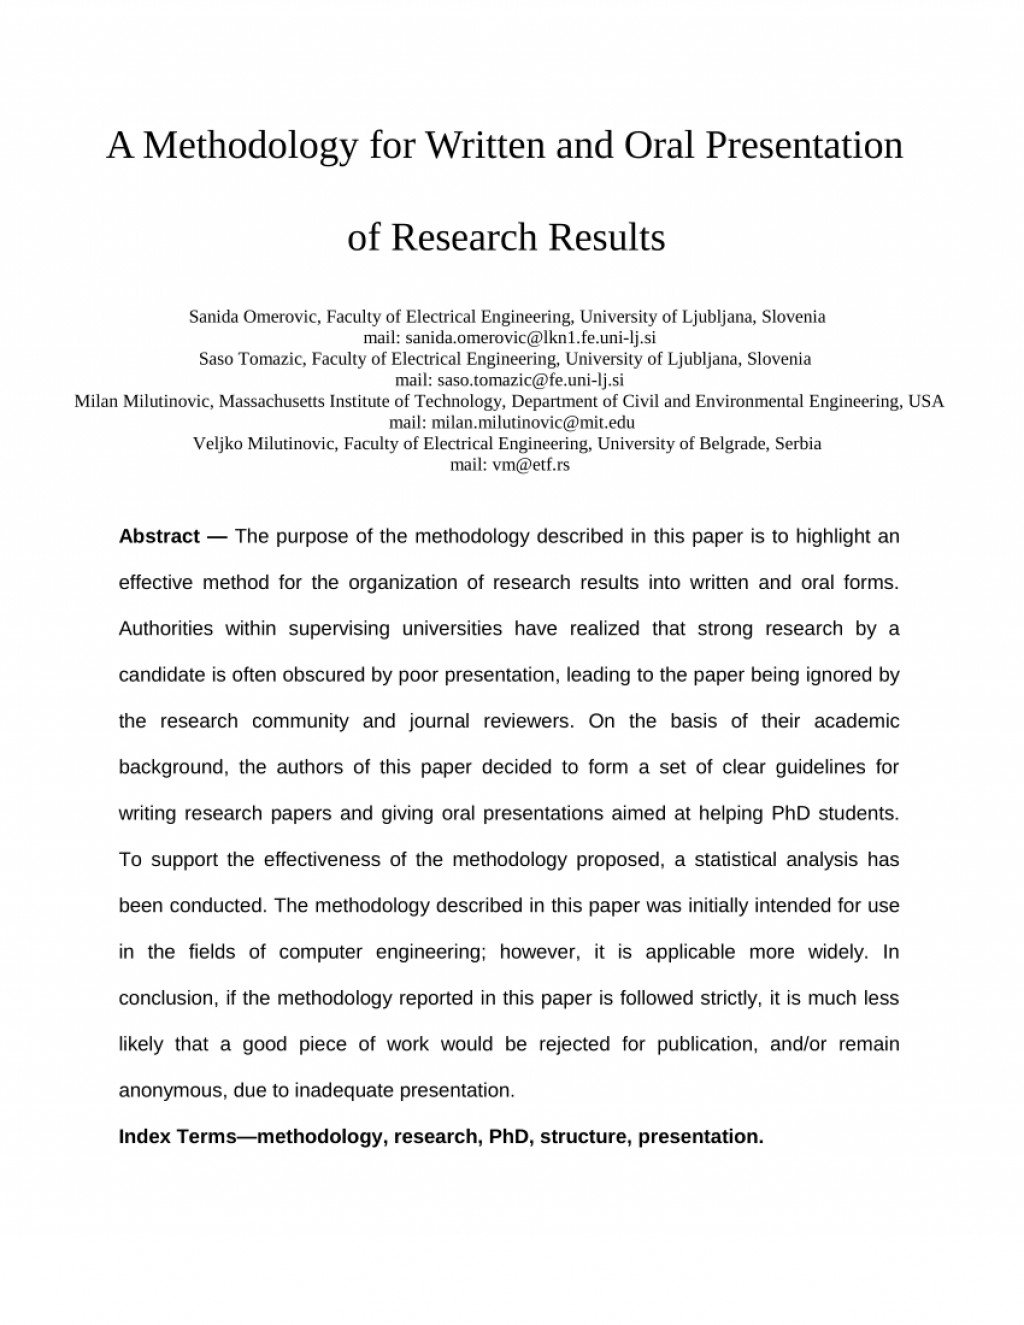 005 Research Paper Poorly Written Papers Stunning Examples Of Badly Large